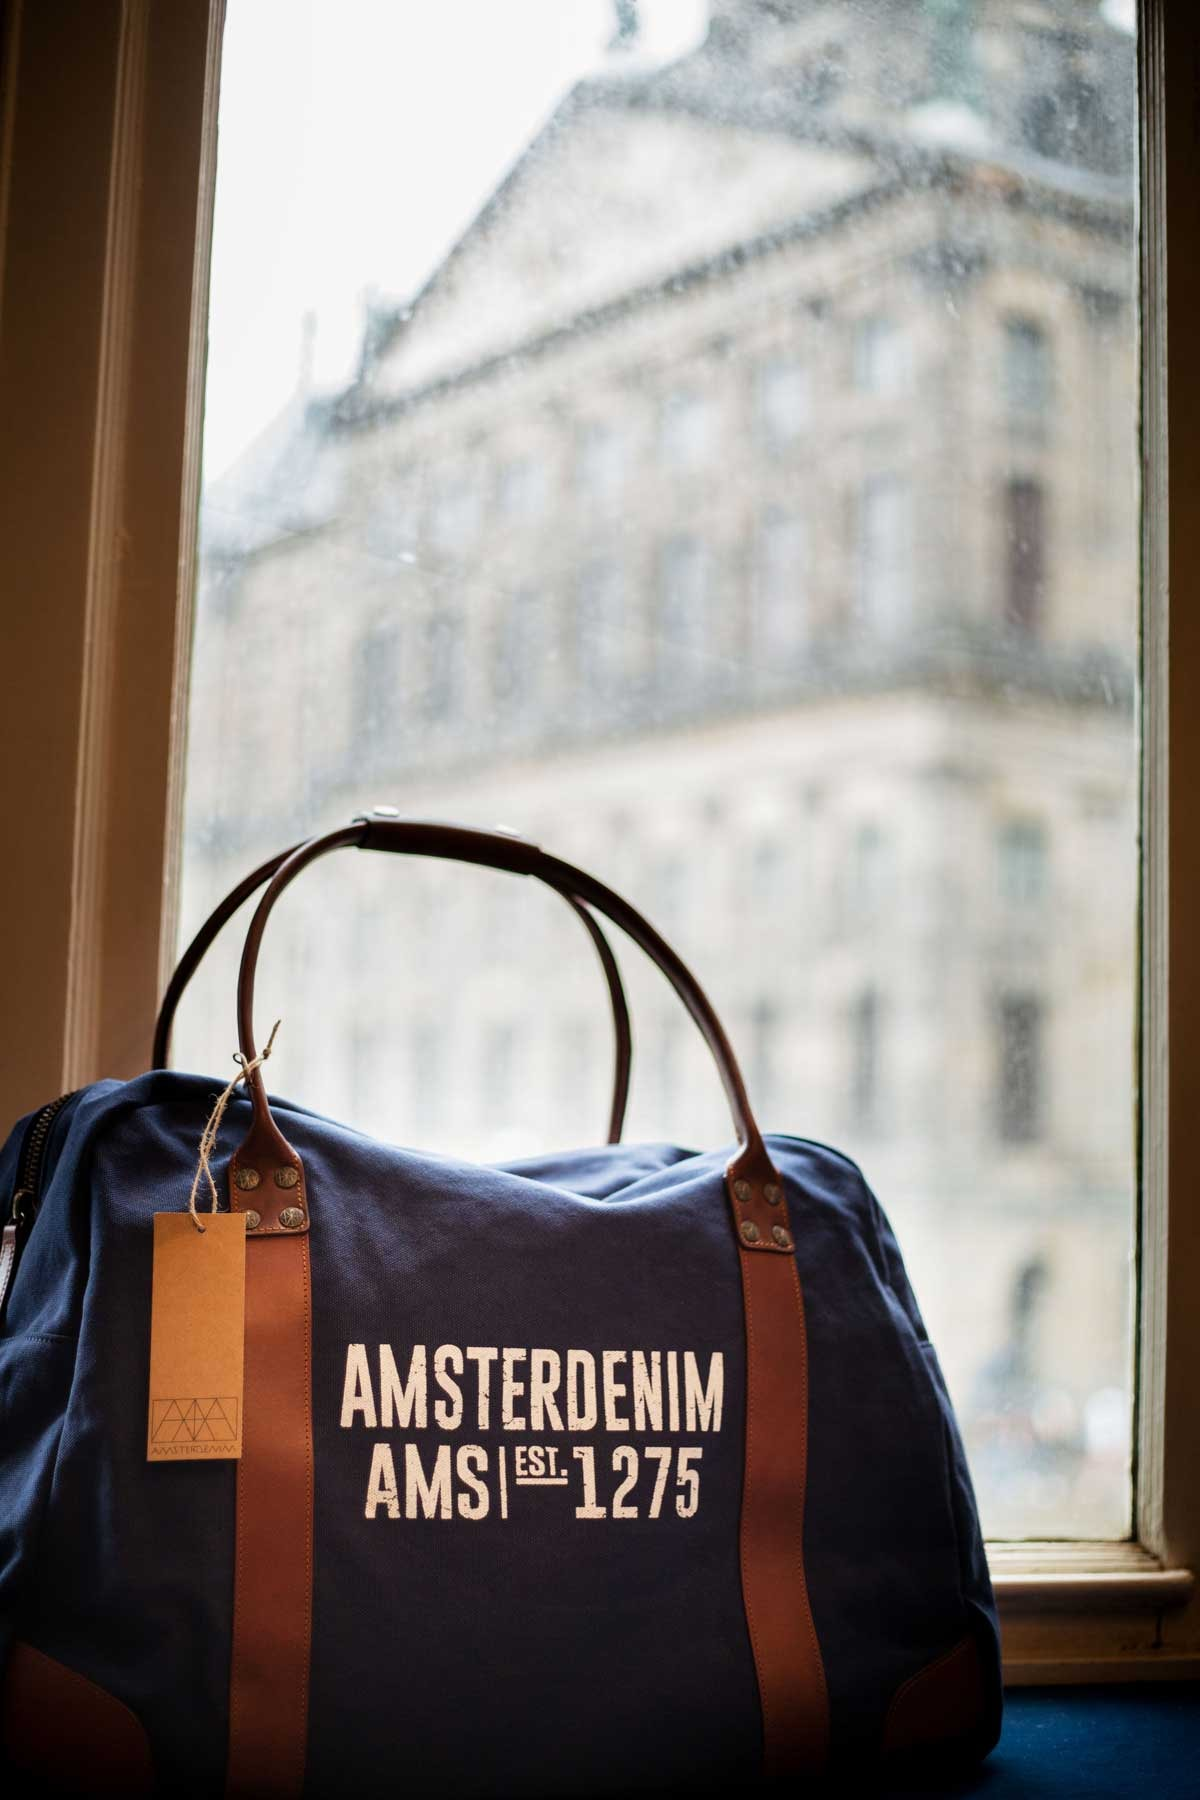 Amsterdenim opens flagship store on Dam Square